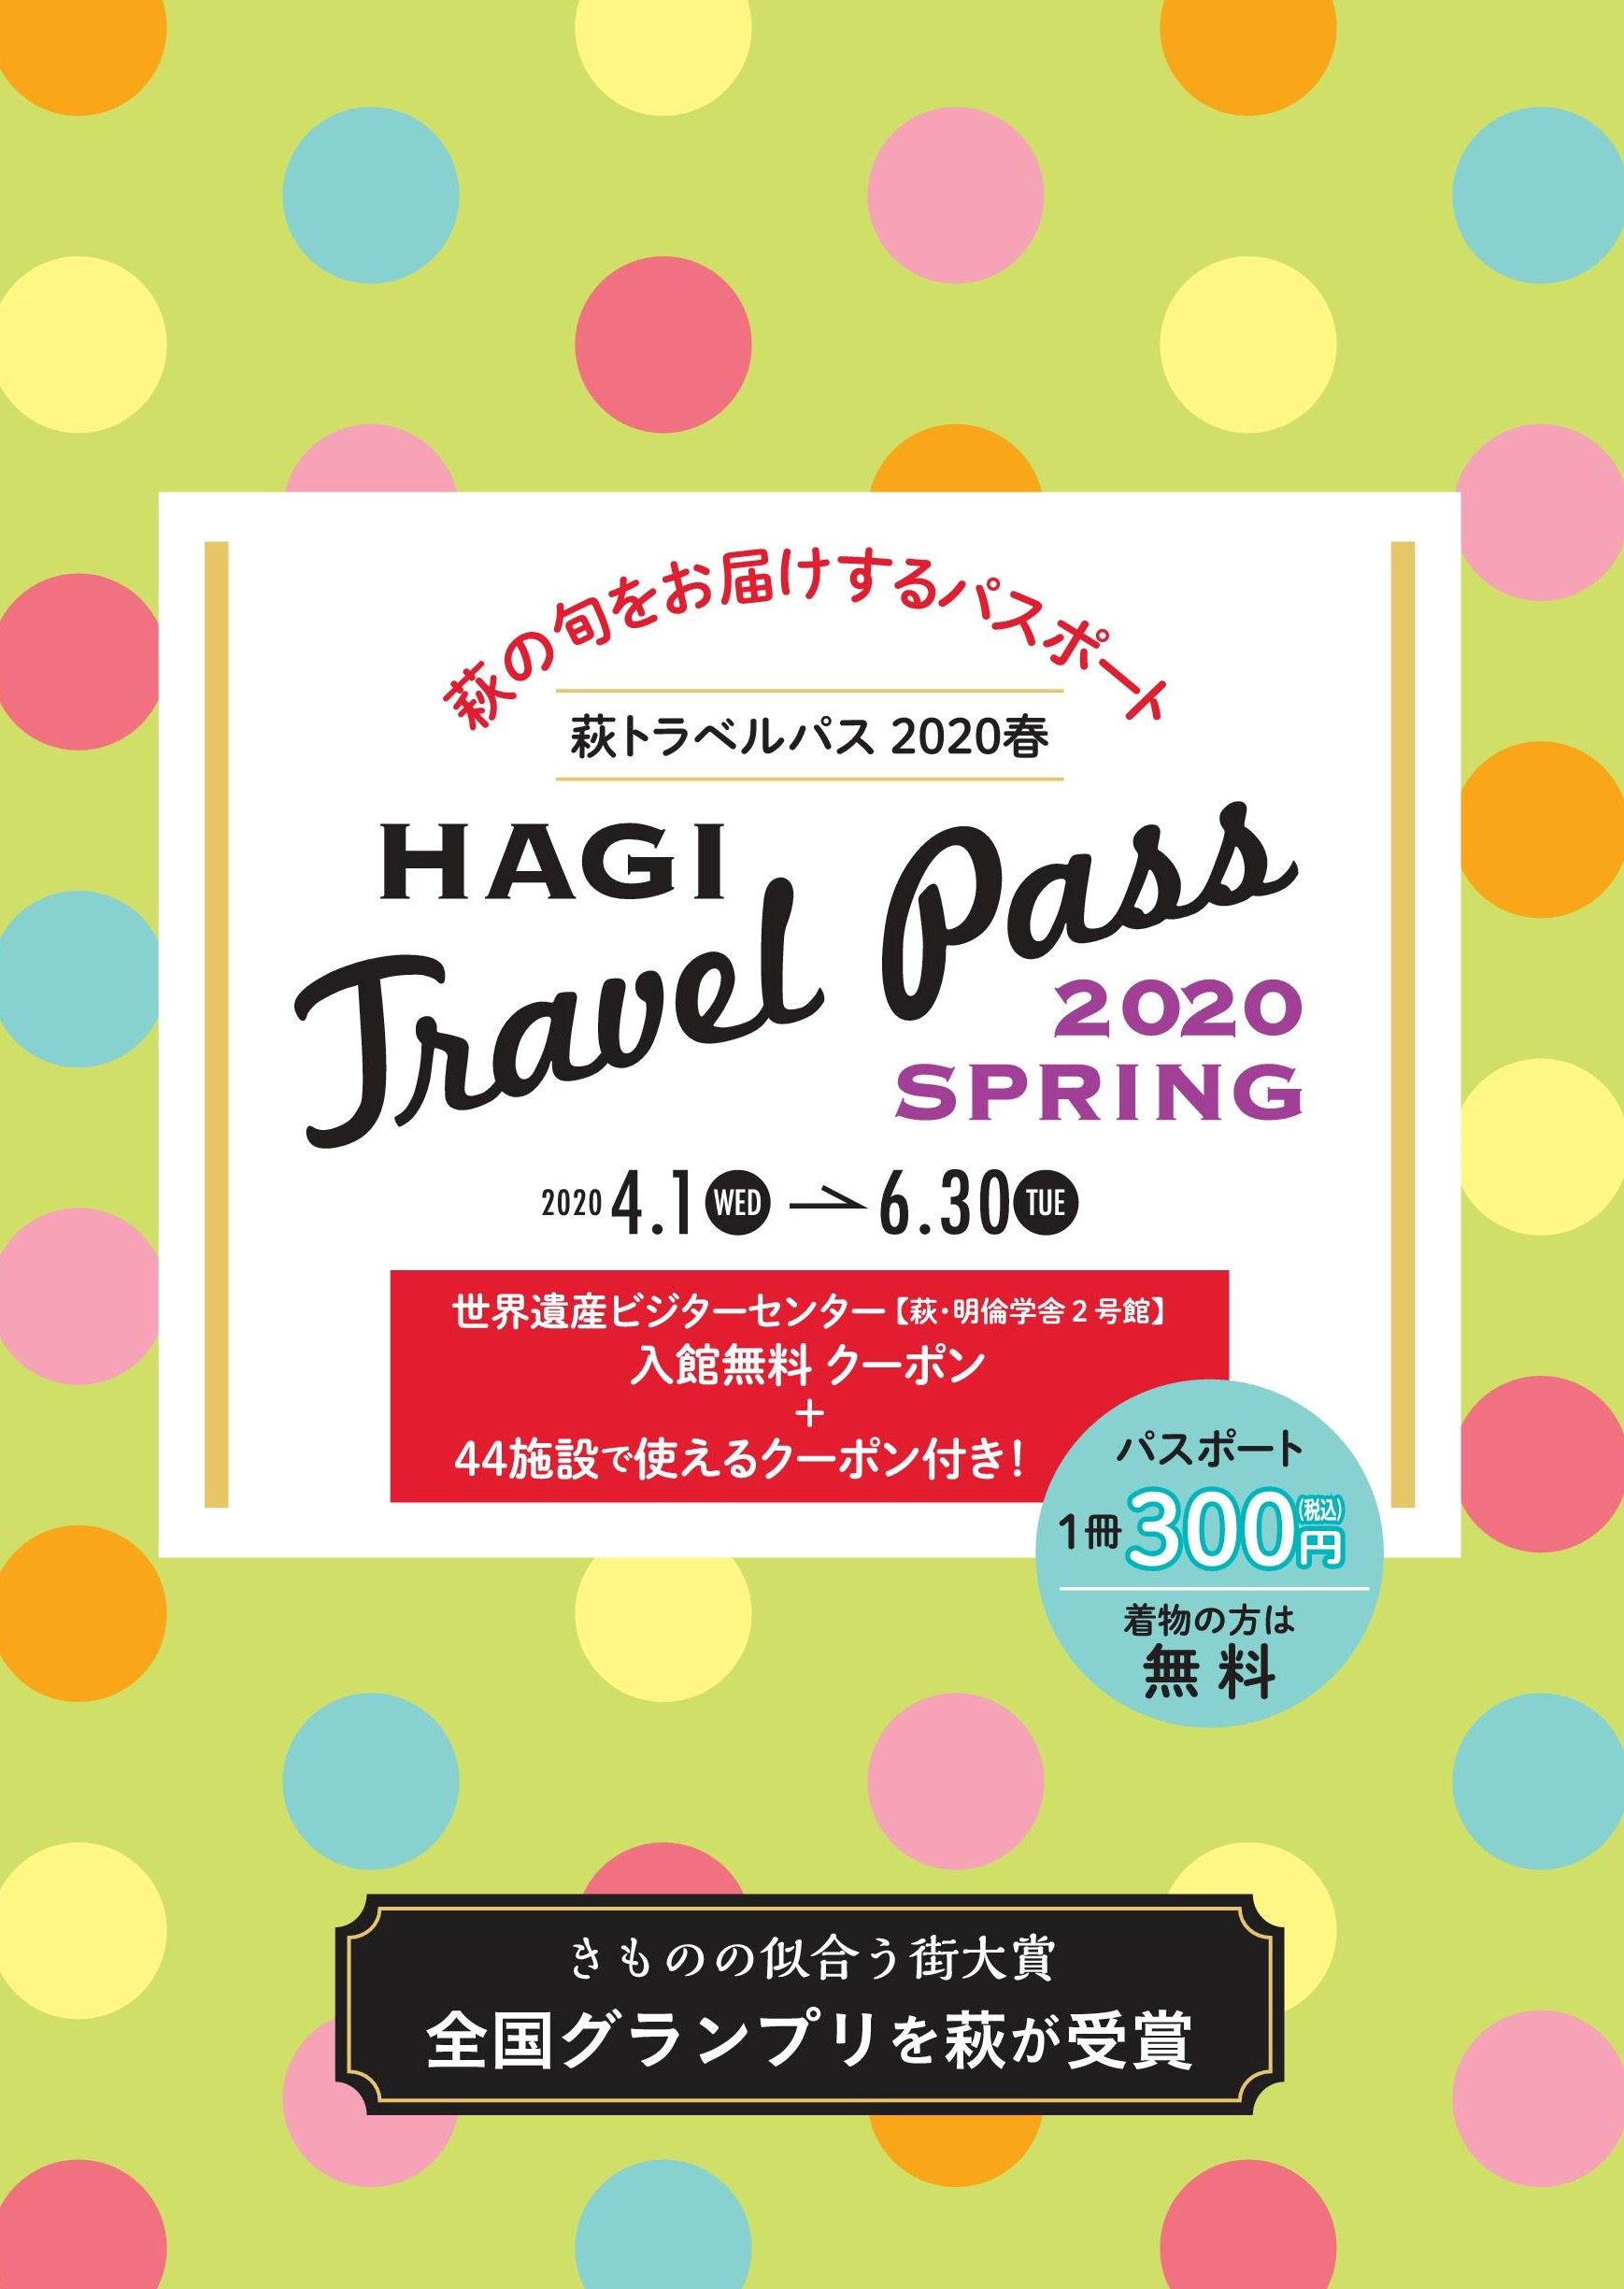 画像:HAGI TRAVEL PASS 2020 SPRING